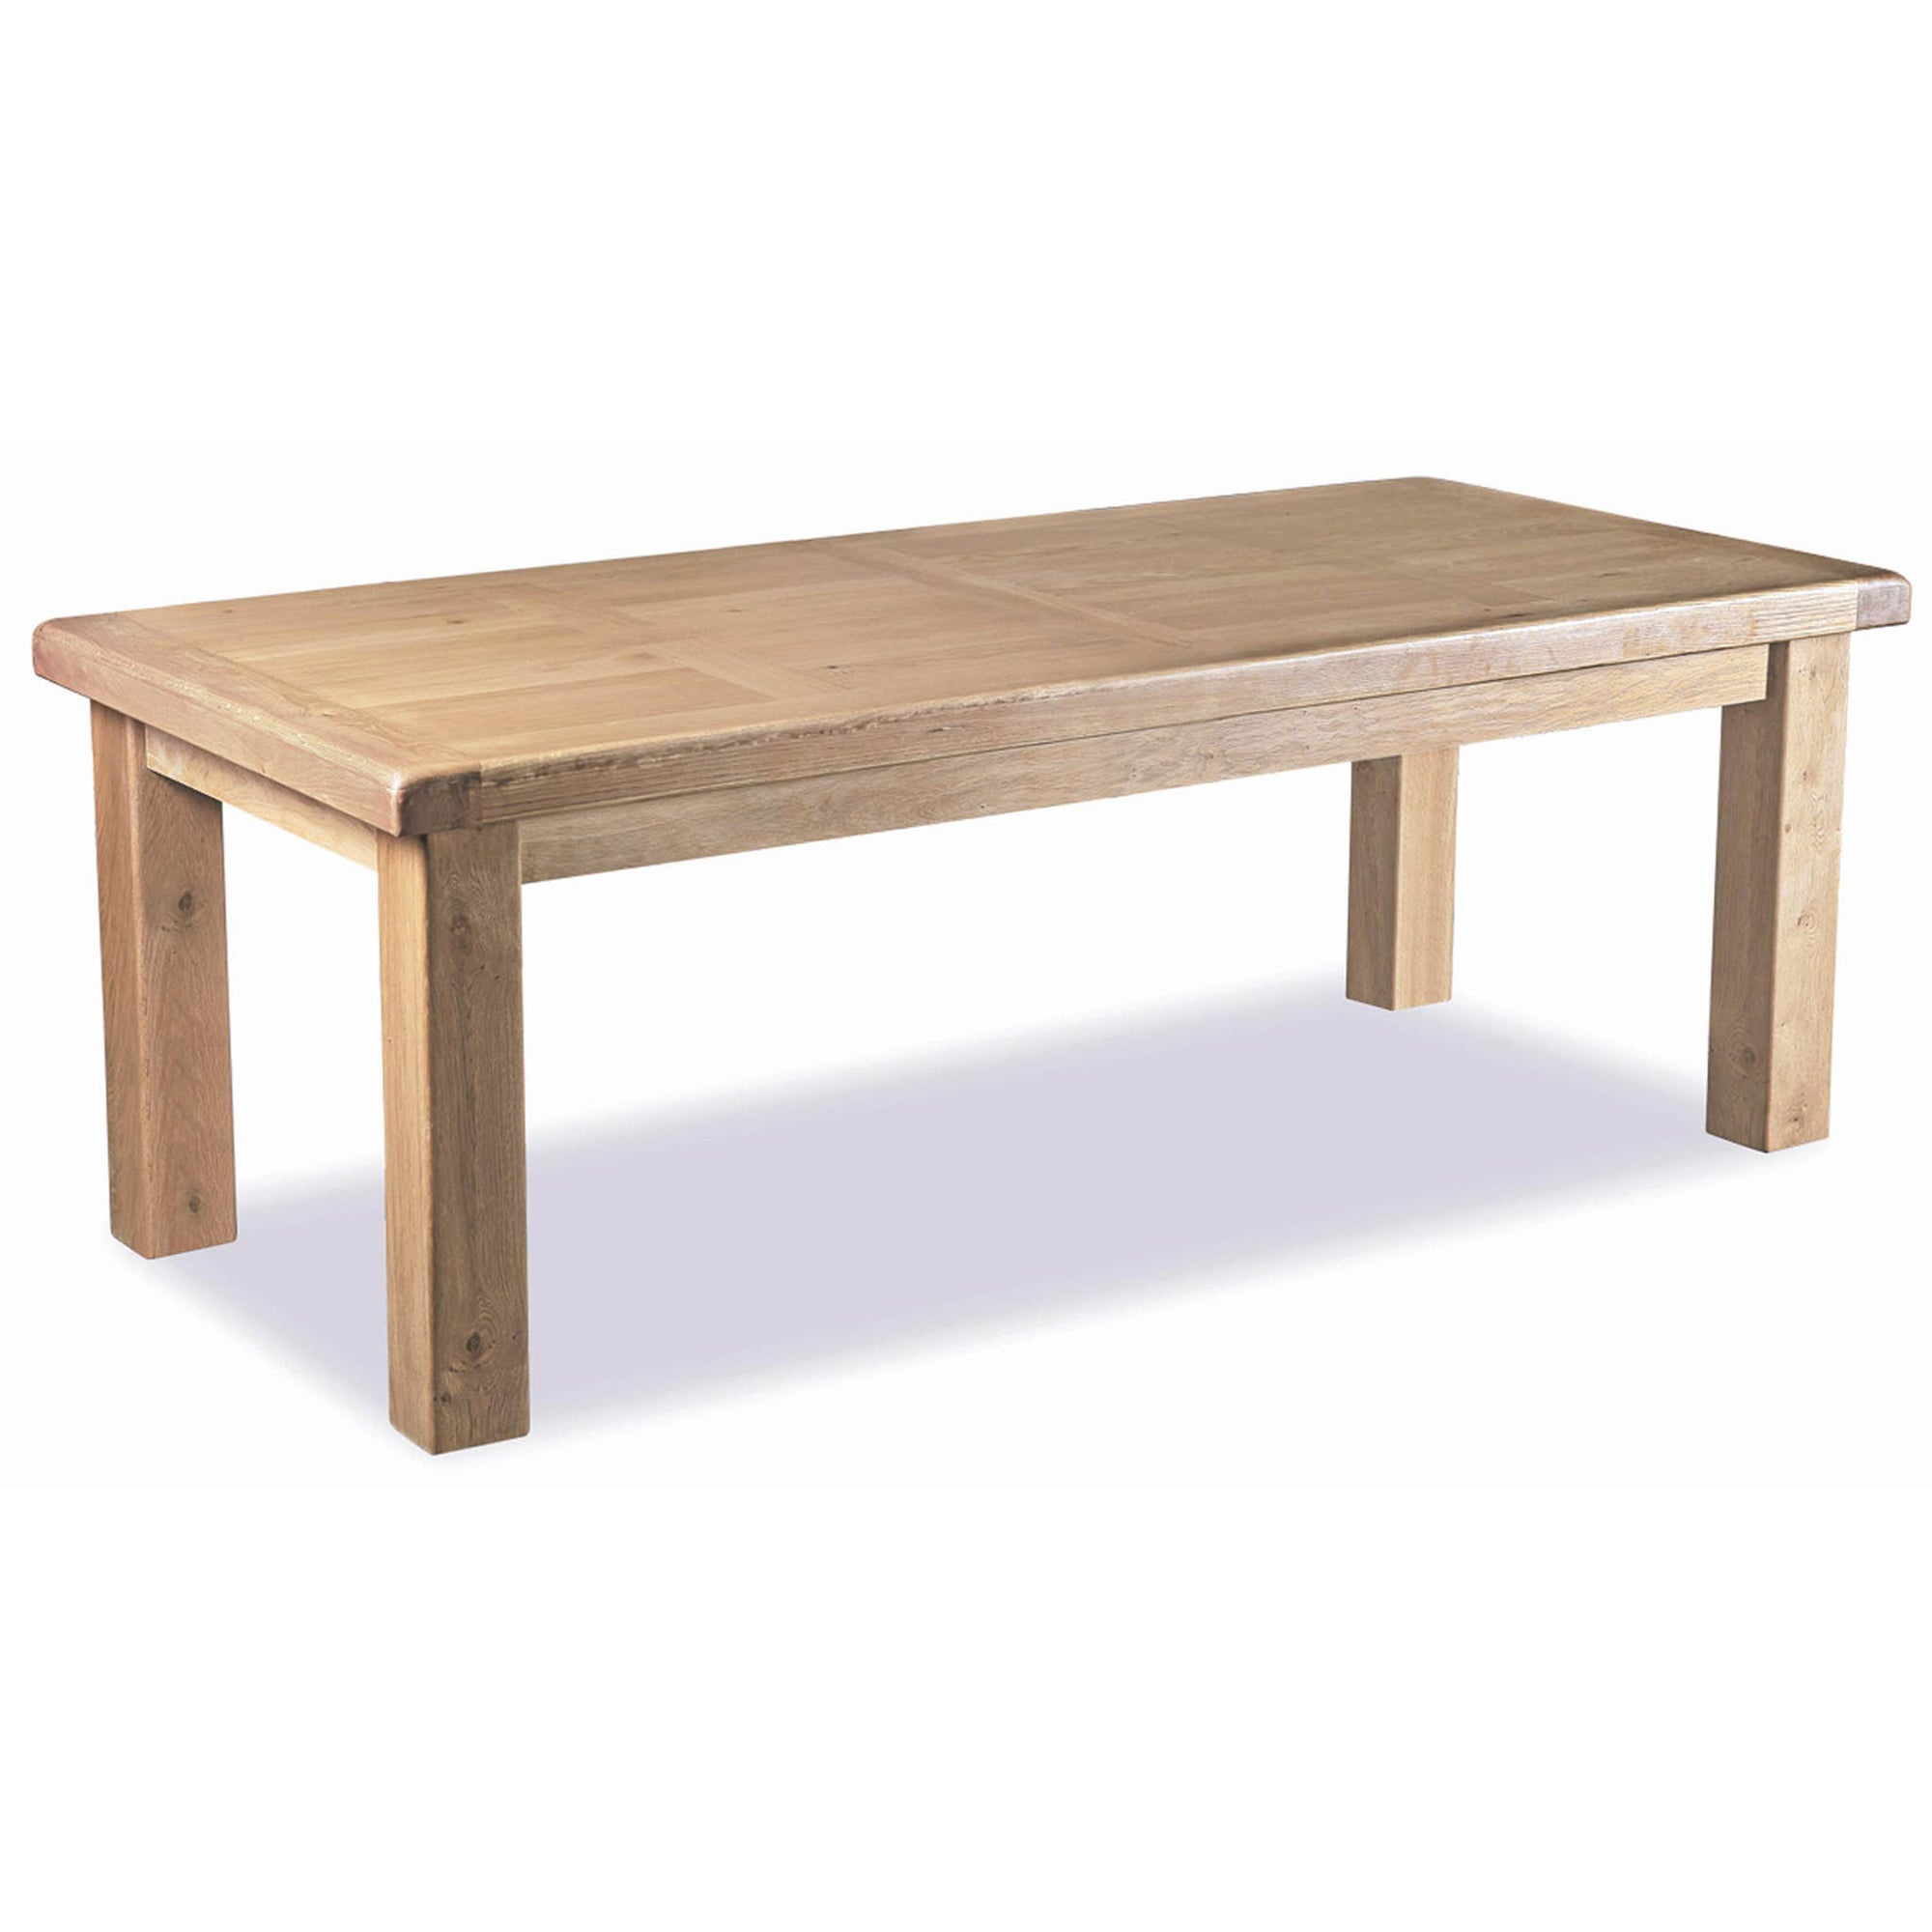 Malvern Oak Extending Dining Table by Roseland Furniture